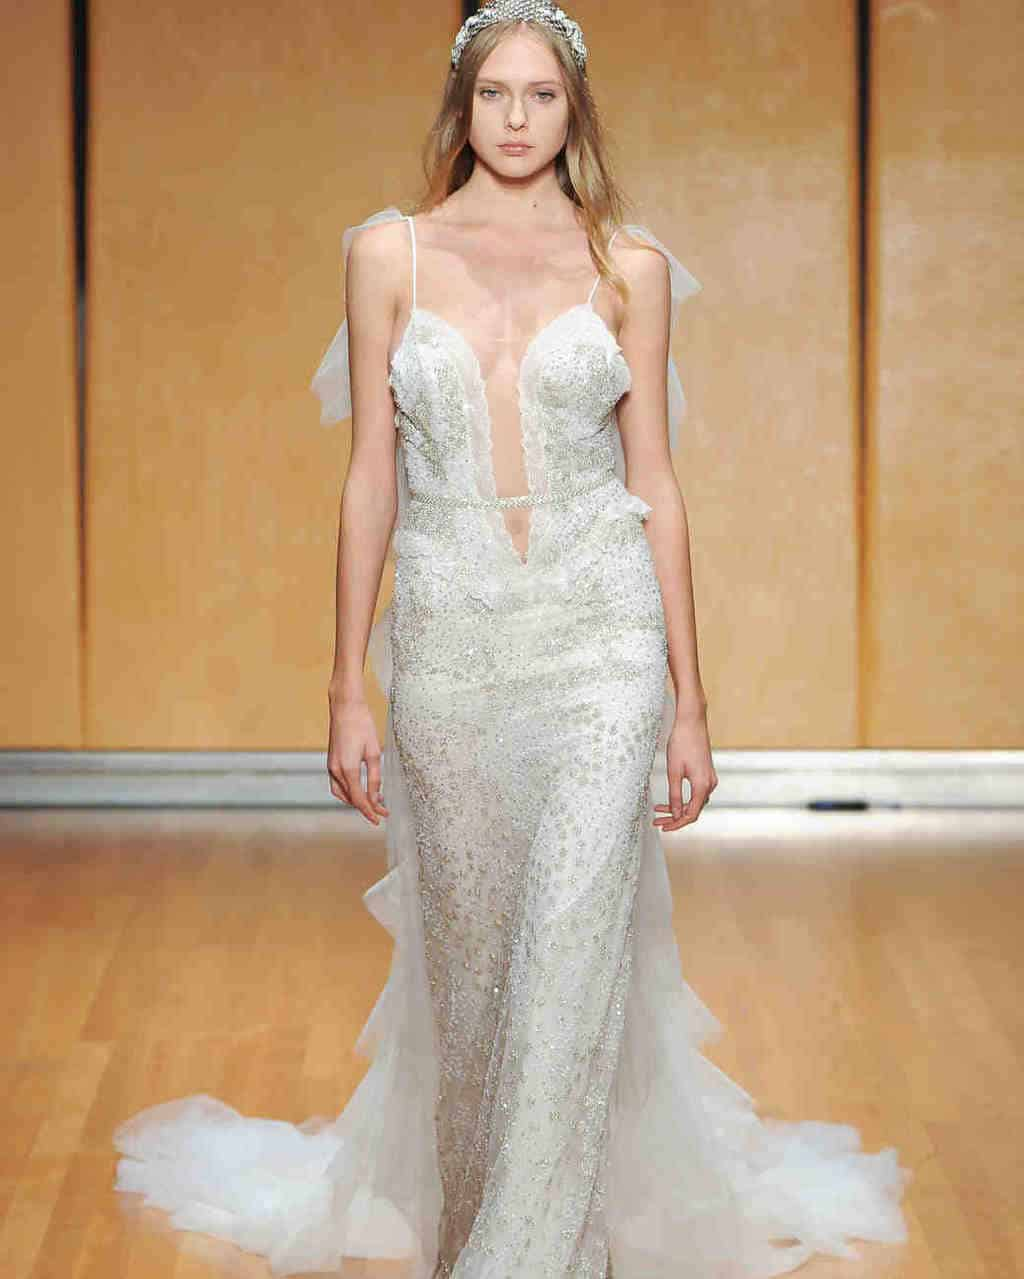 inbal-dror-wedding-dress-fall2017-6203351-018_vert